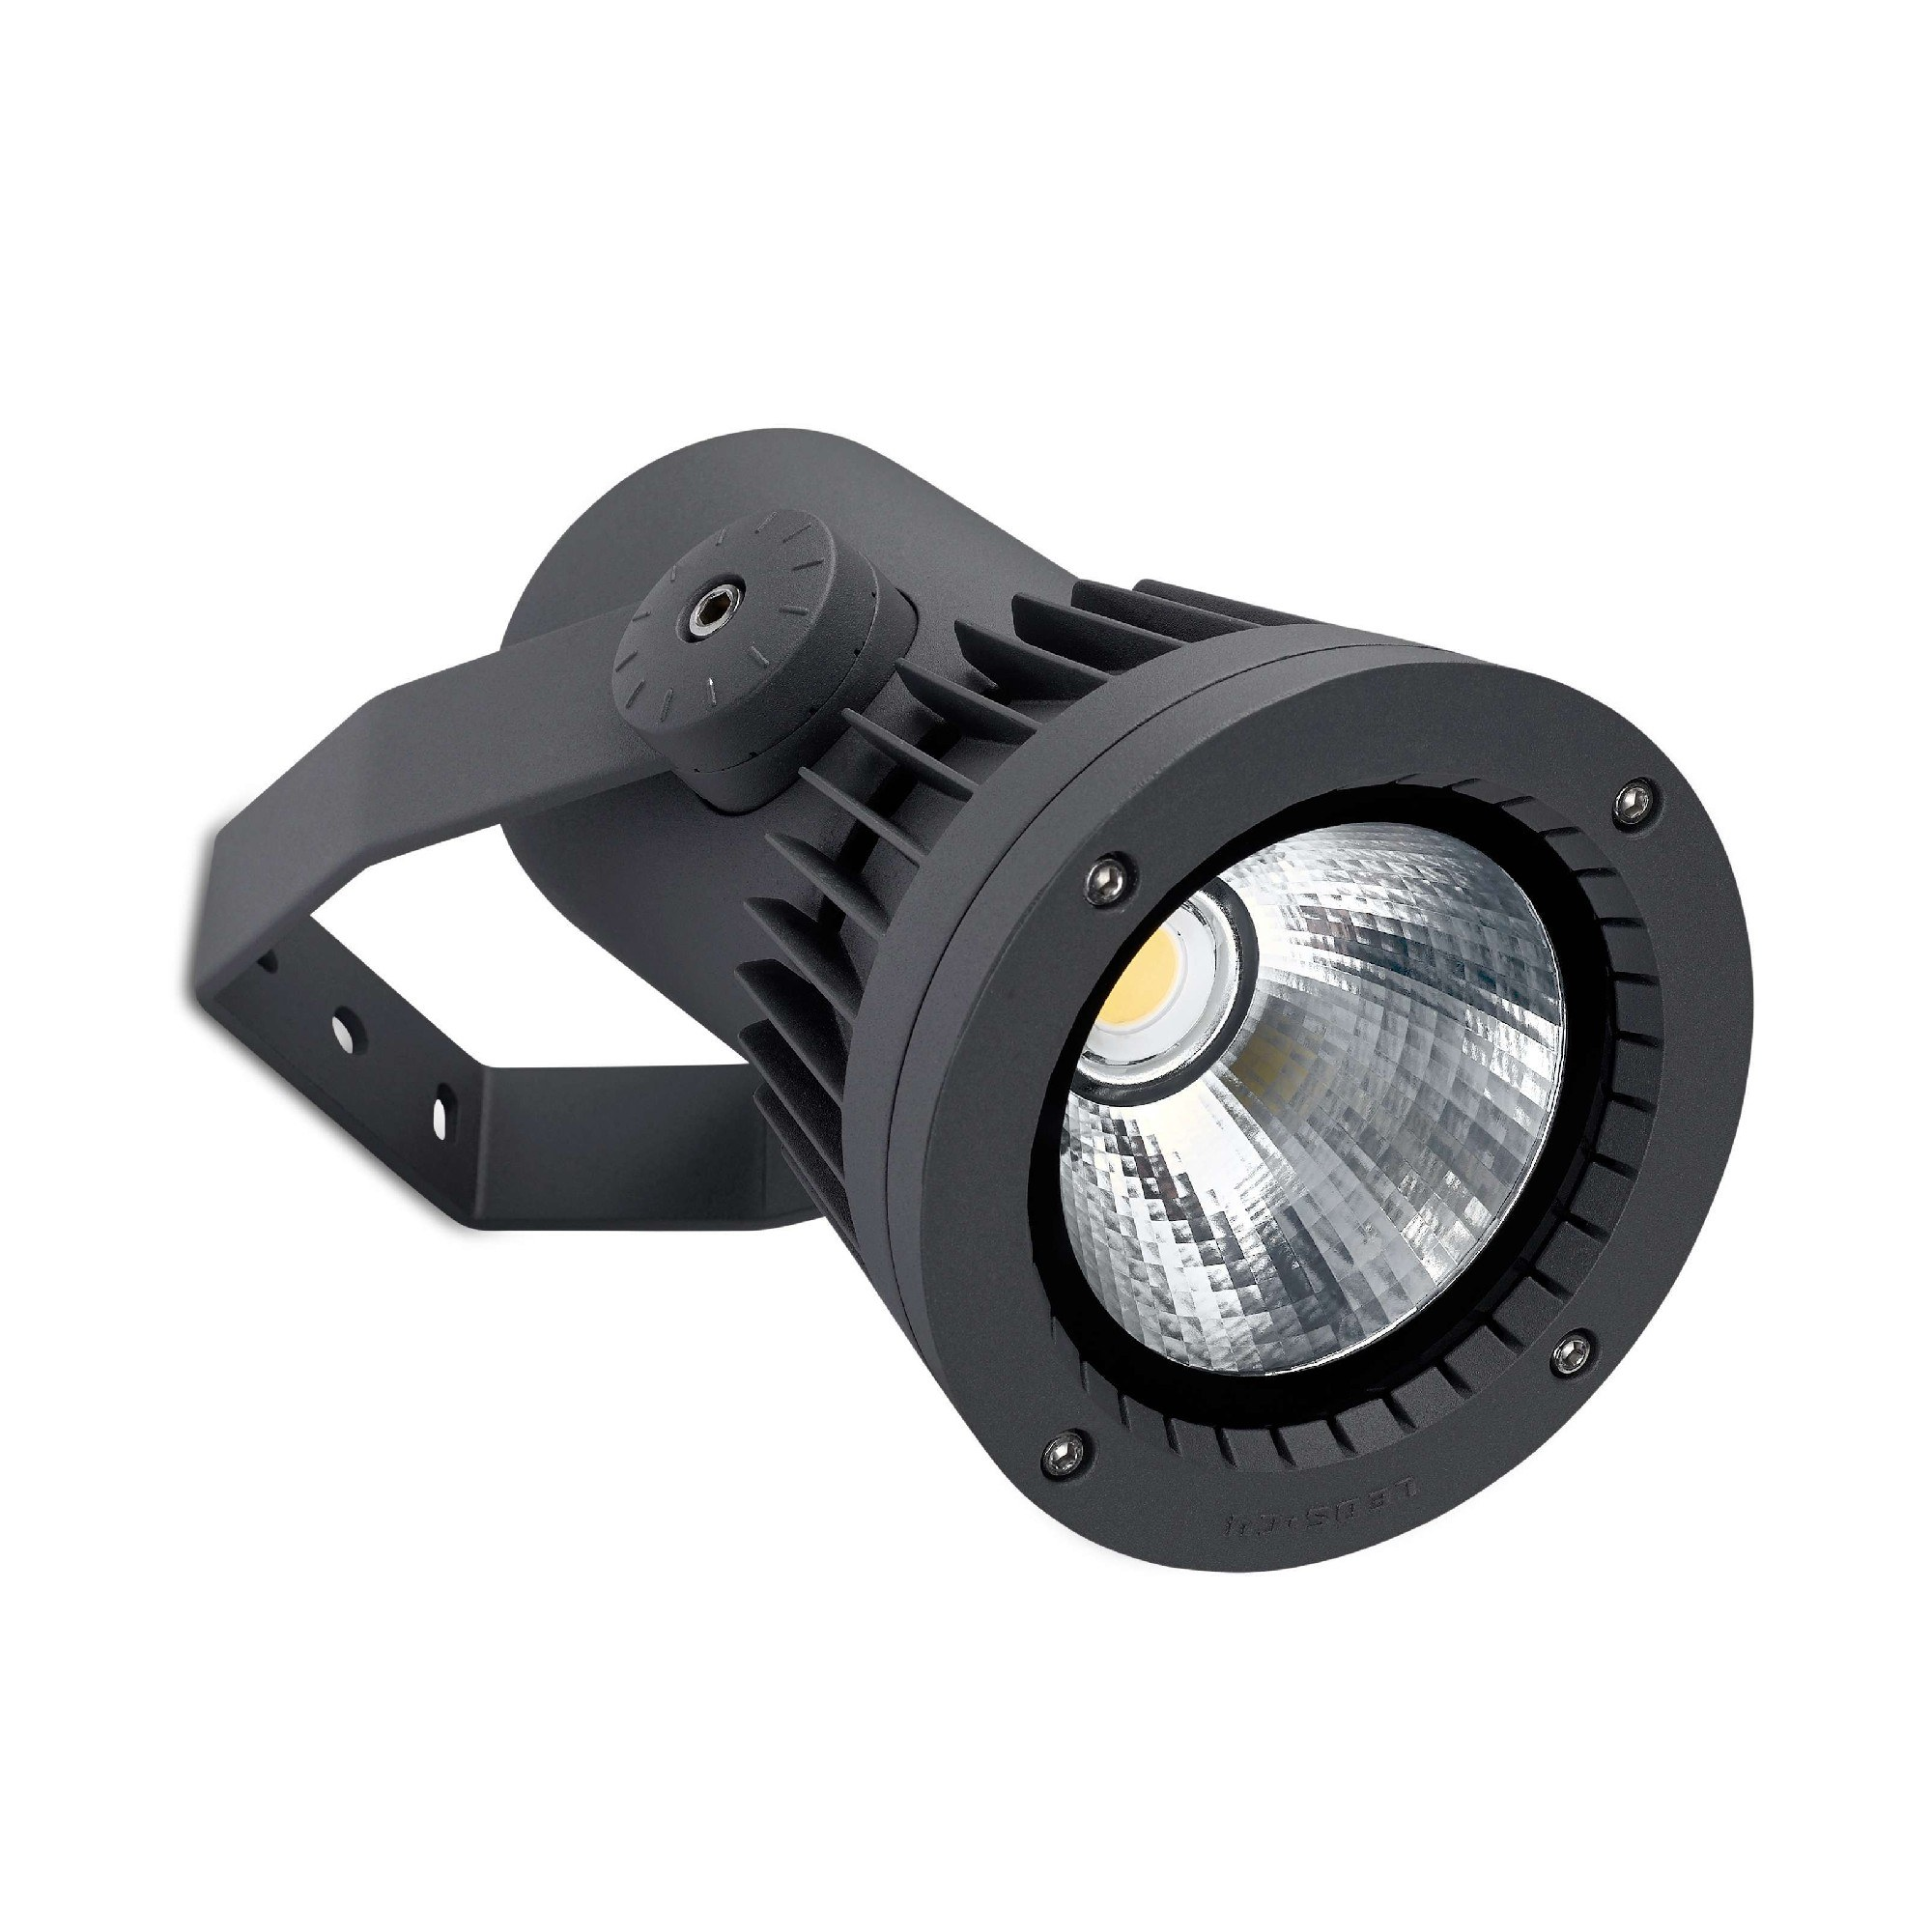 Leds C4 OUTDOOR 05 9959 Z5 CM LED lampen